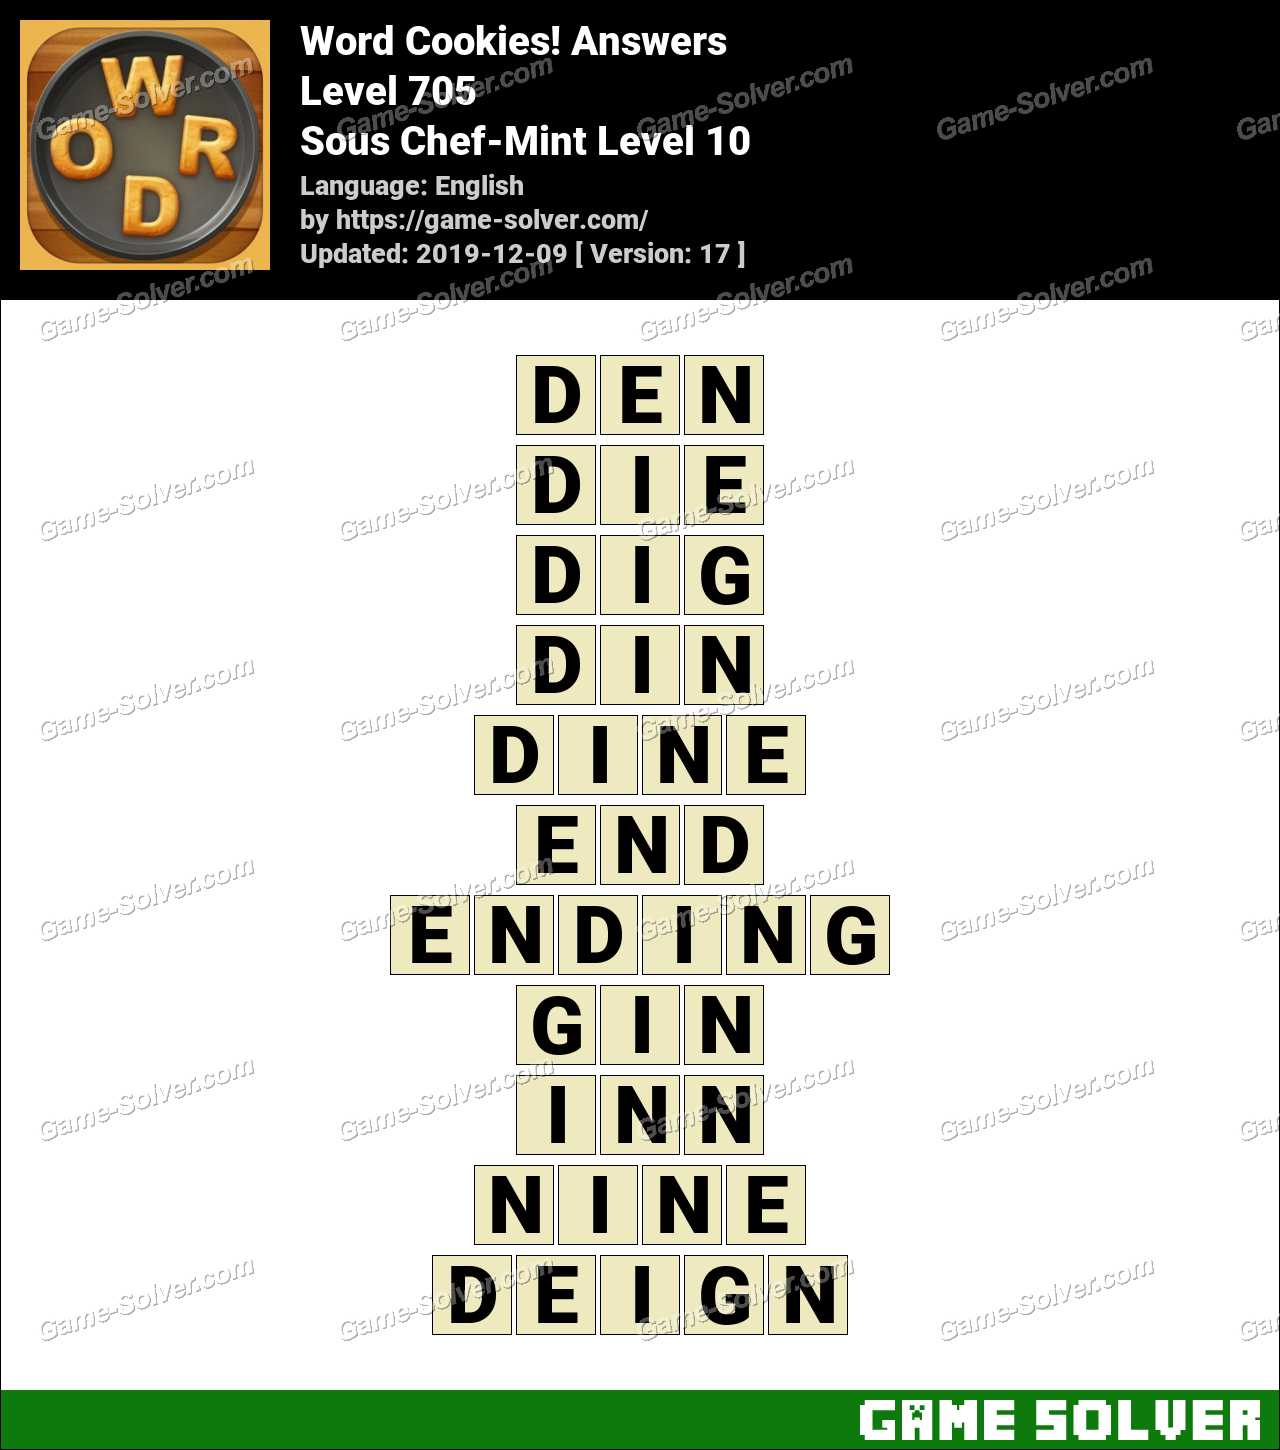 Word Cookies Sous Chef-Mint Level 10 Answers